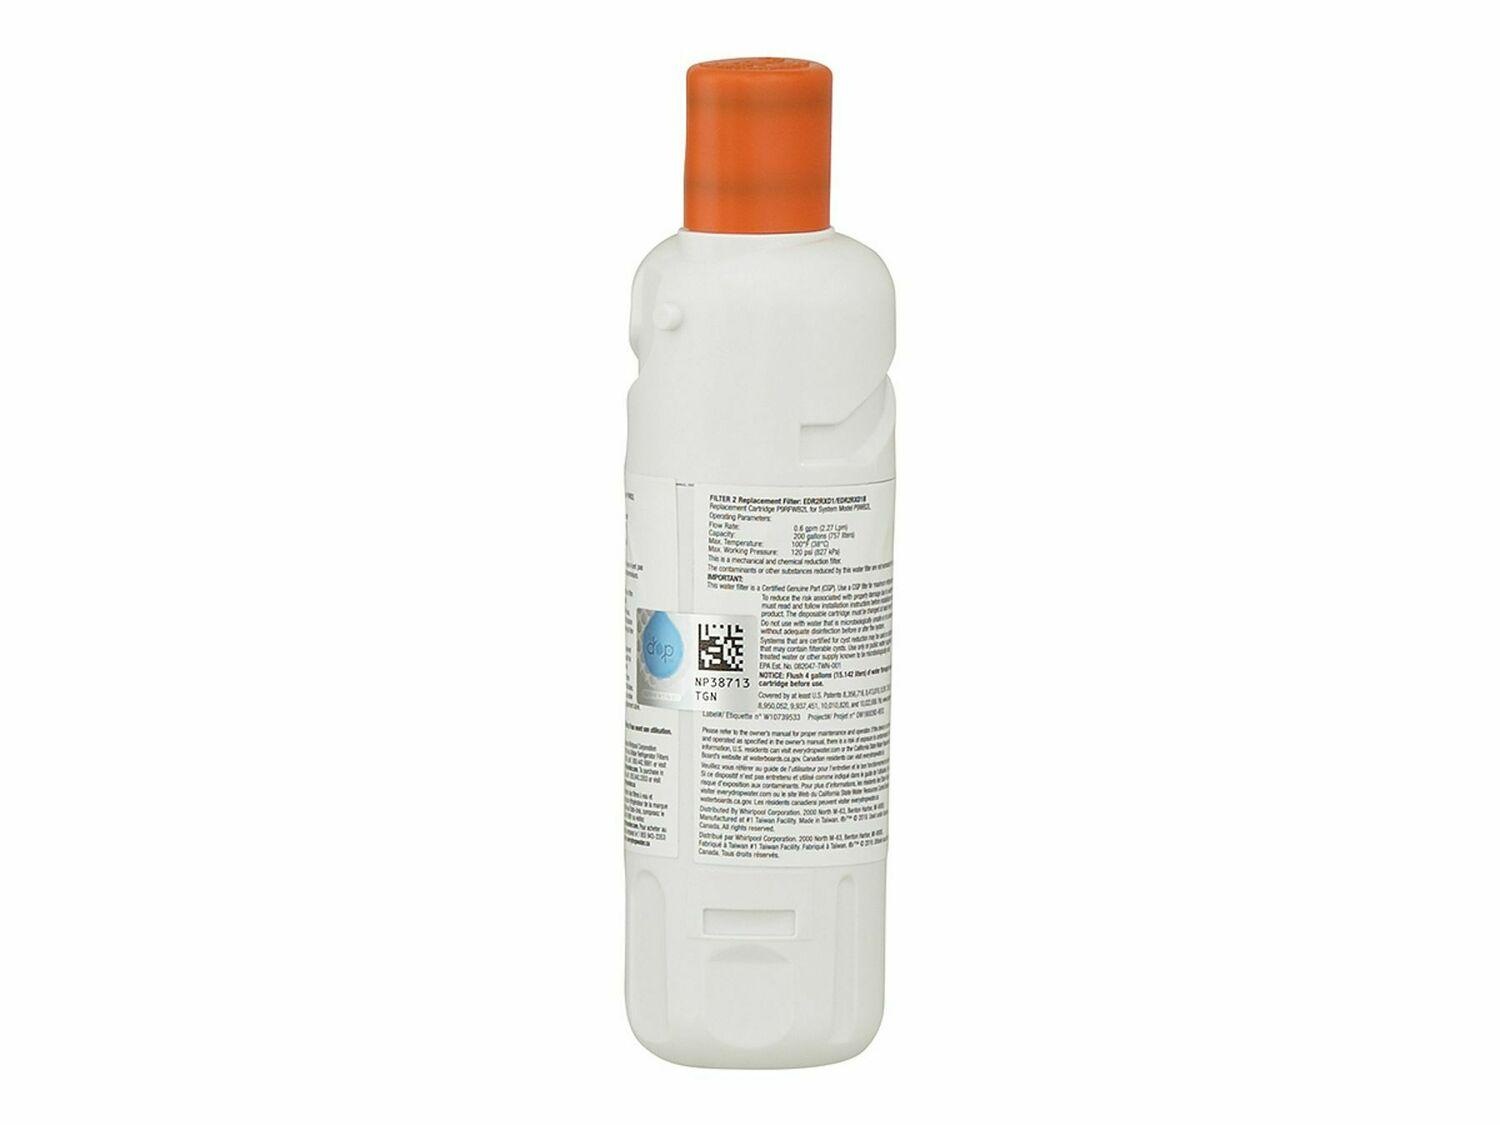 Edr2rxd1whirlpool Everydrop Refrigerator Water Filter 2 Edr2rxd1 Pack Of 1 Judd Black